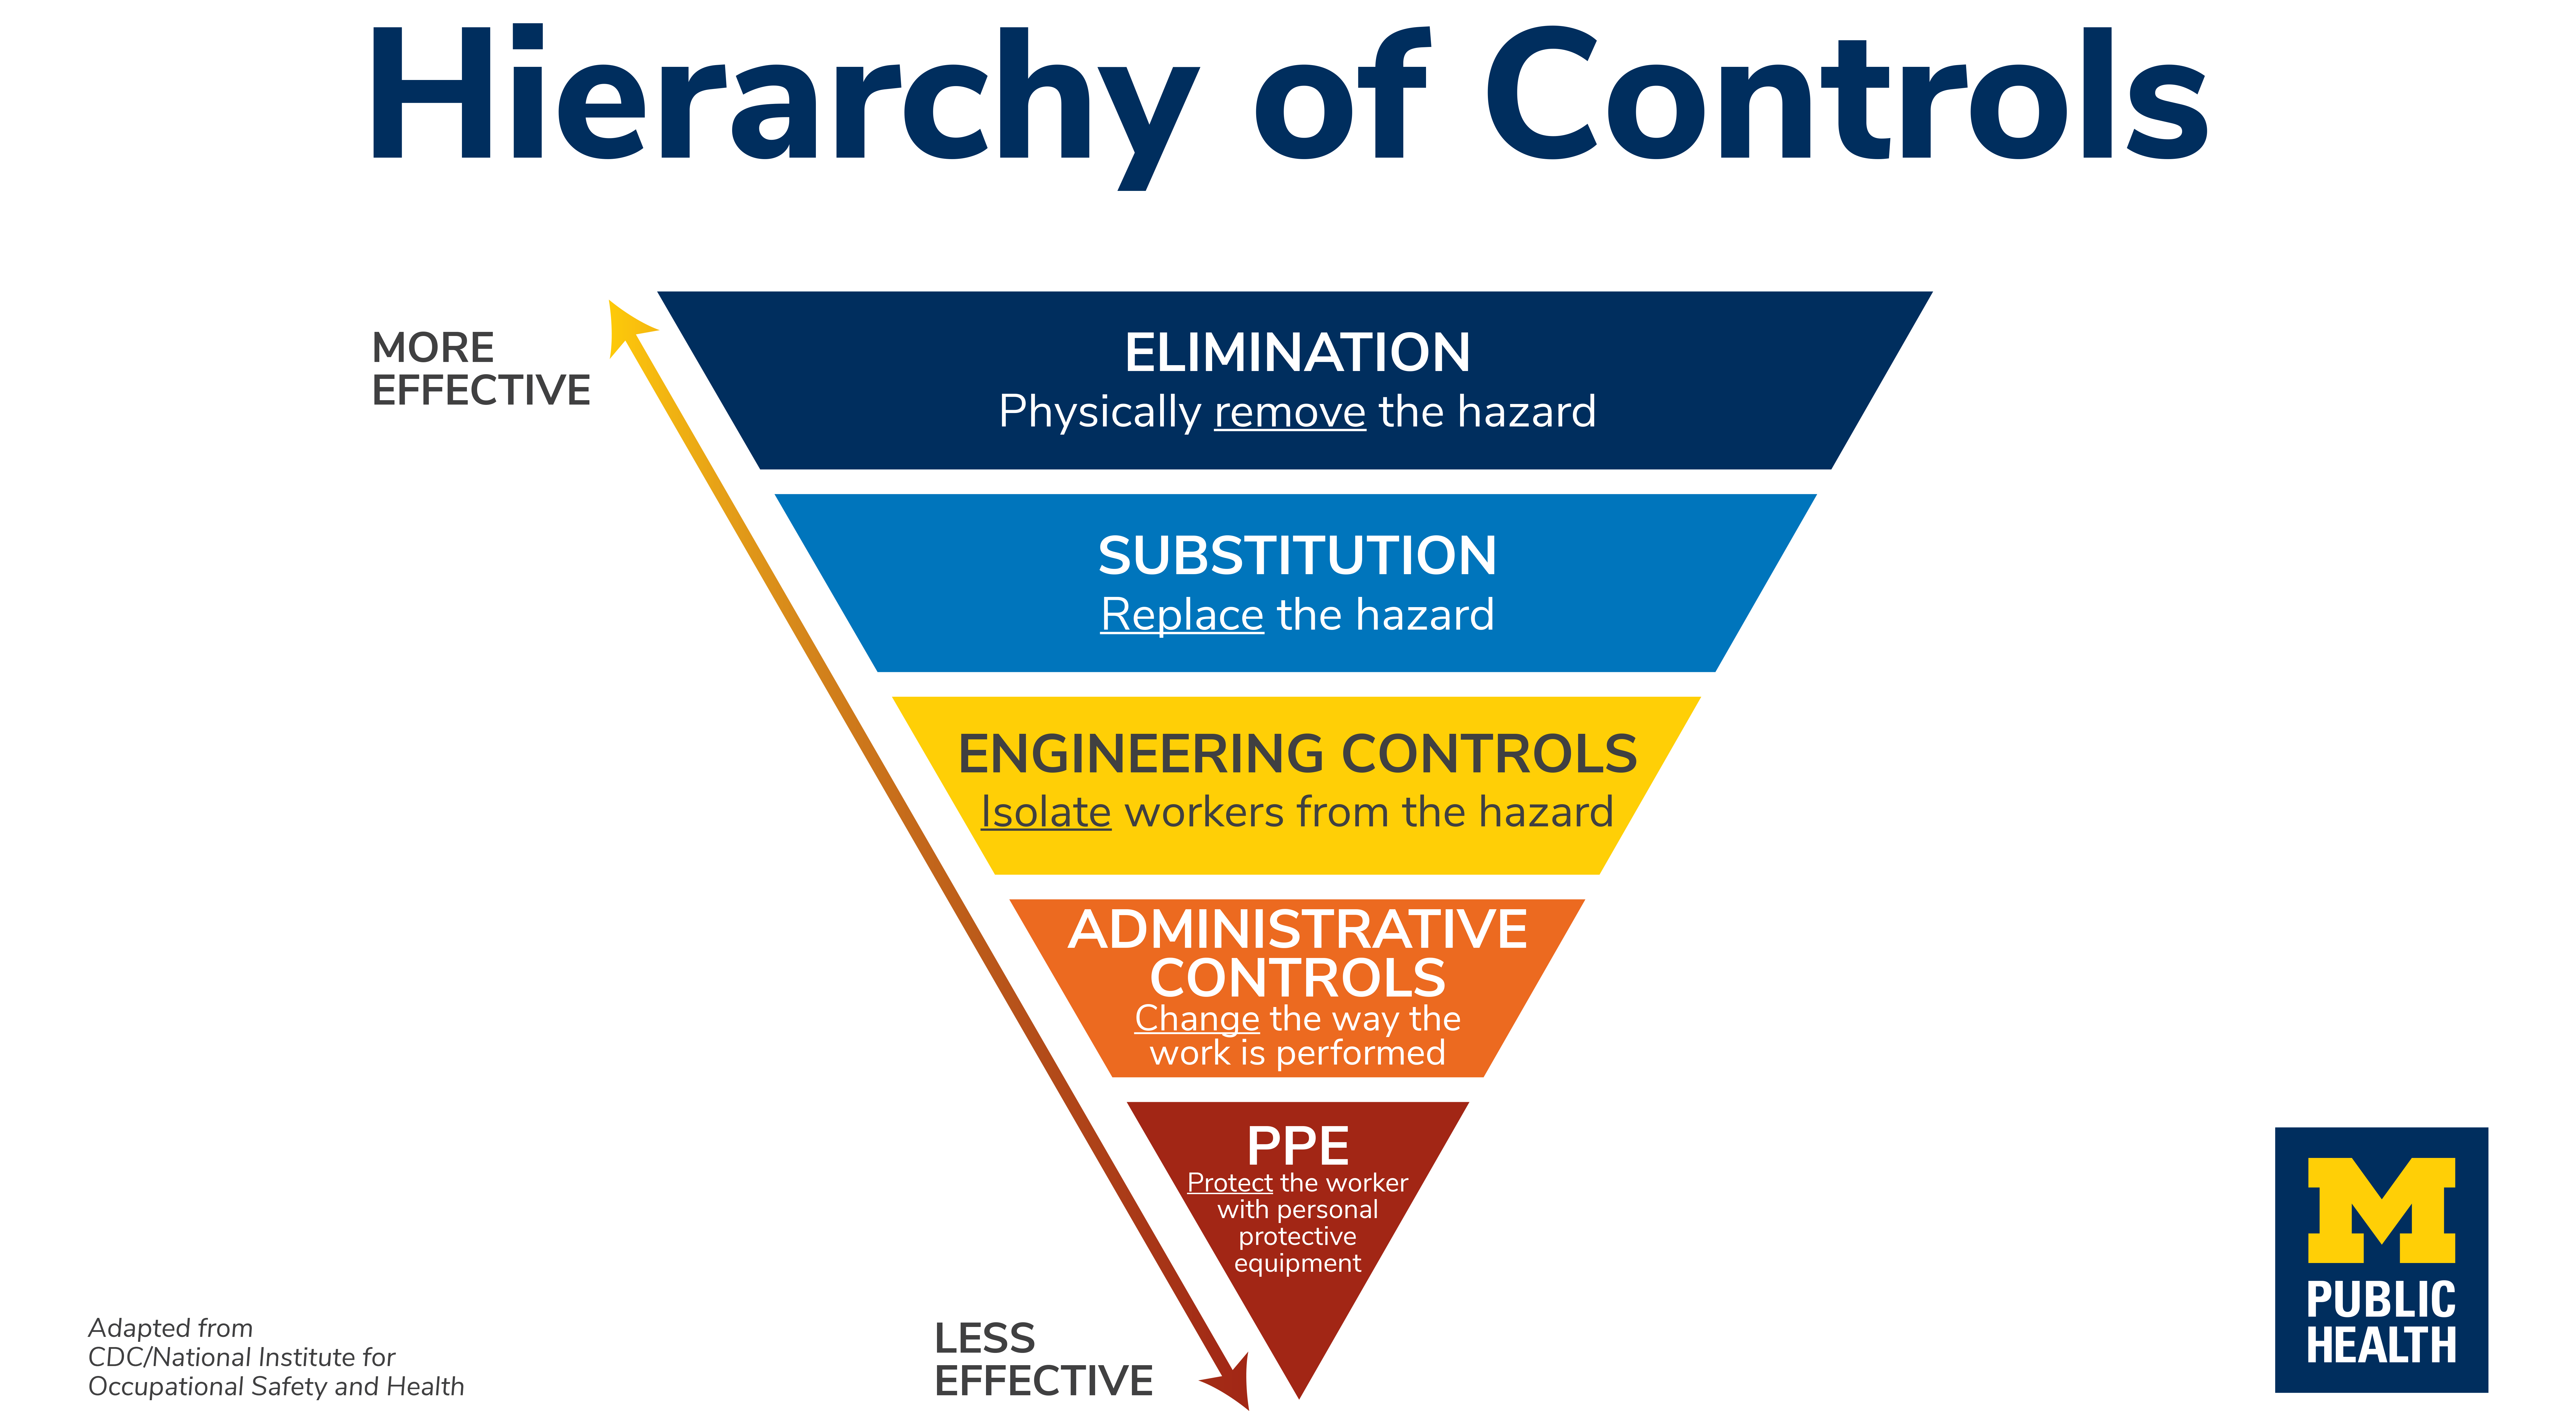 Illustration of the hierarchy of controls for COVID-19